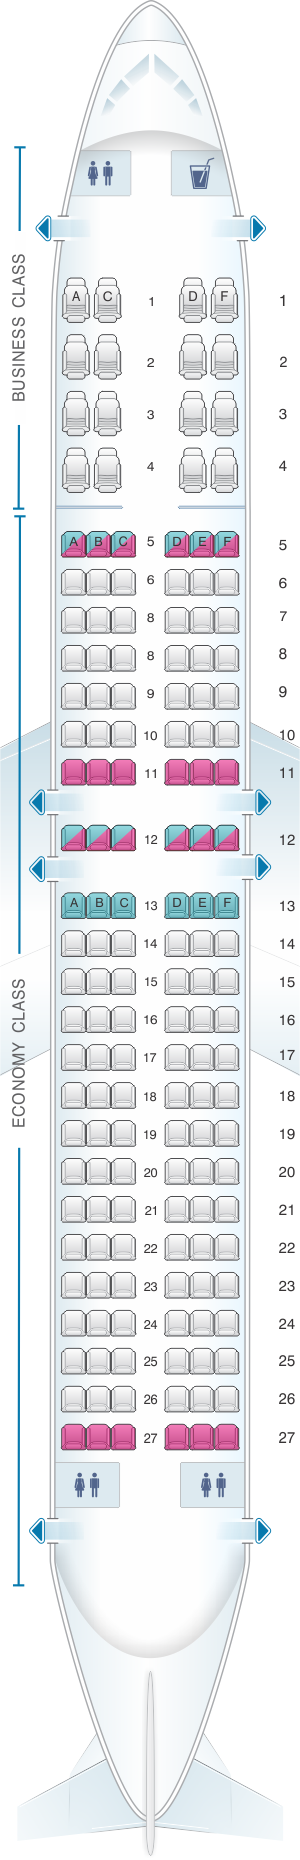 Seat Map Boeing B737 800 Spirit Airlines Malaysia Airlines Kingfisher Airlines